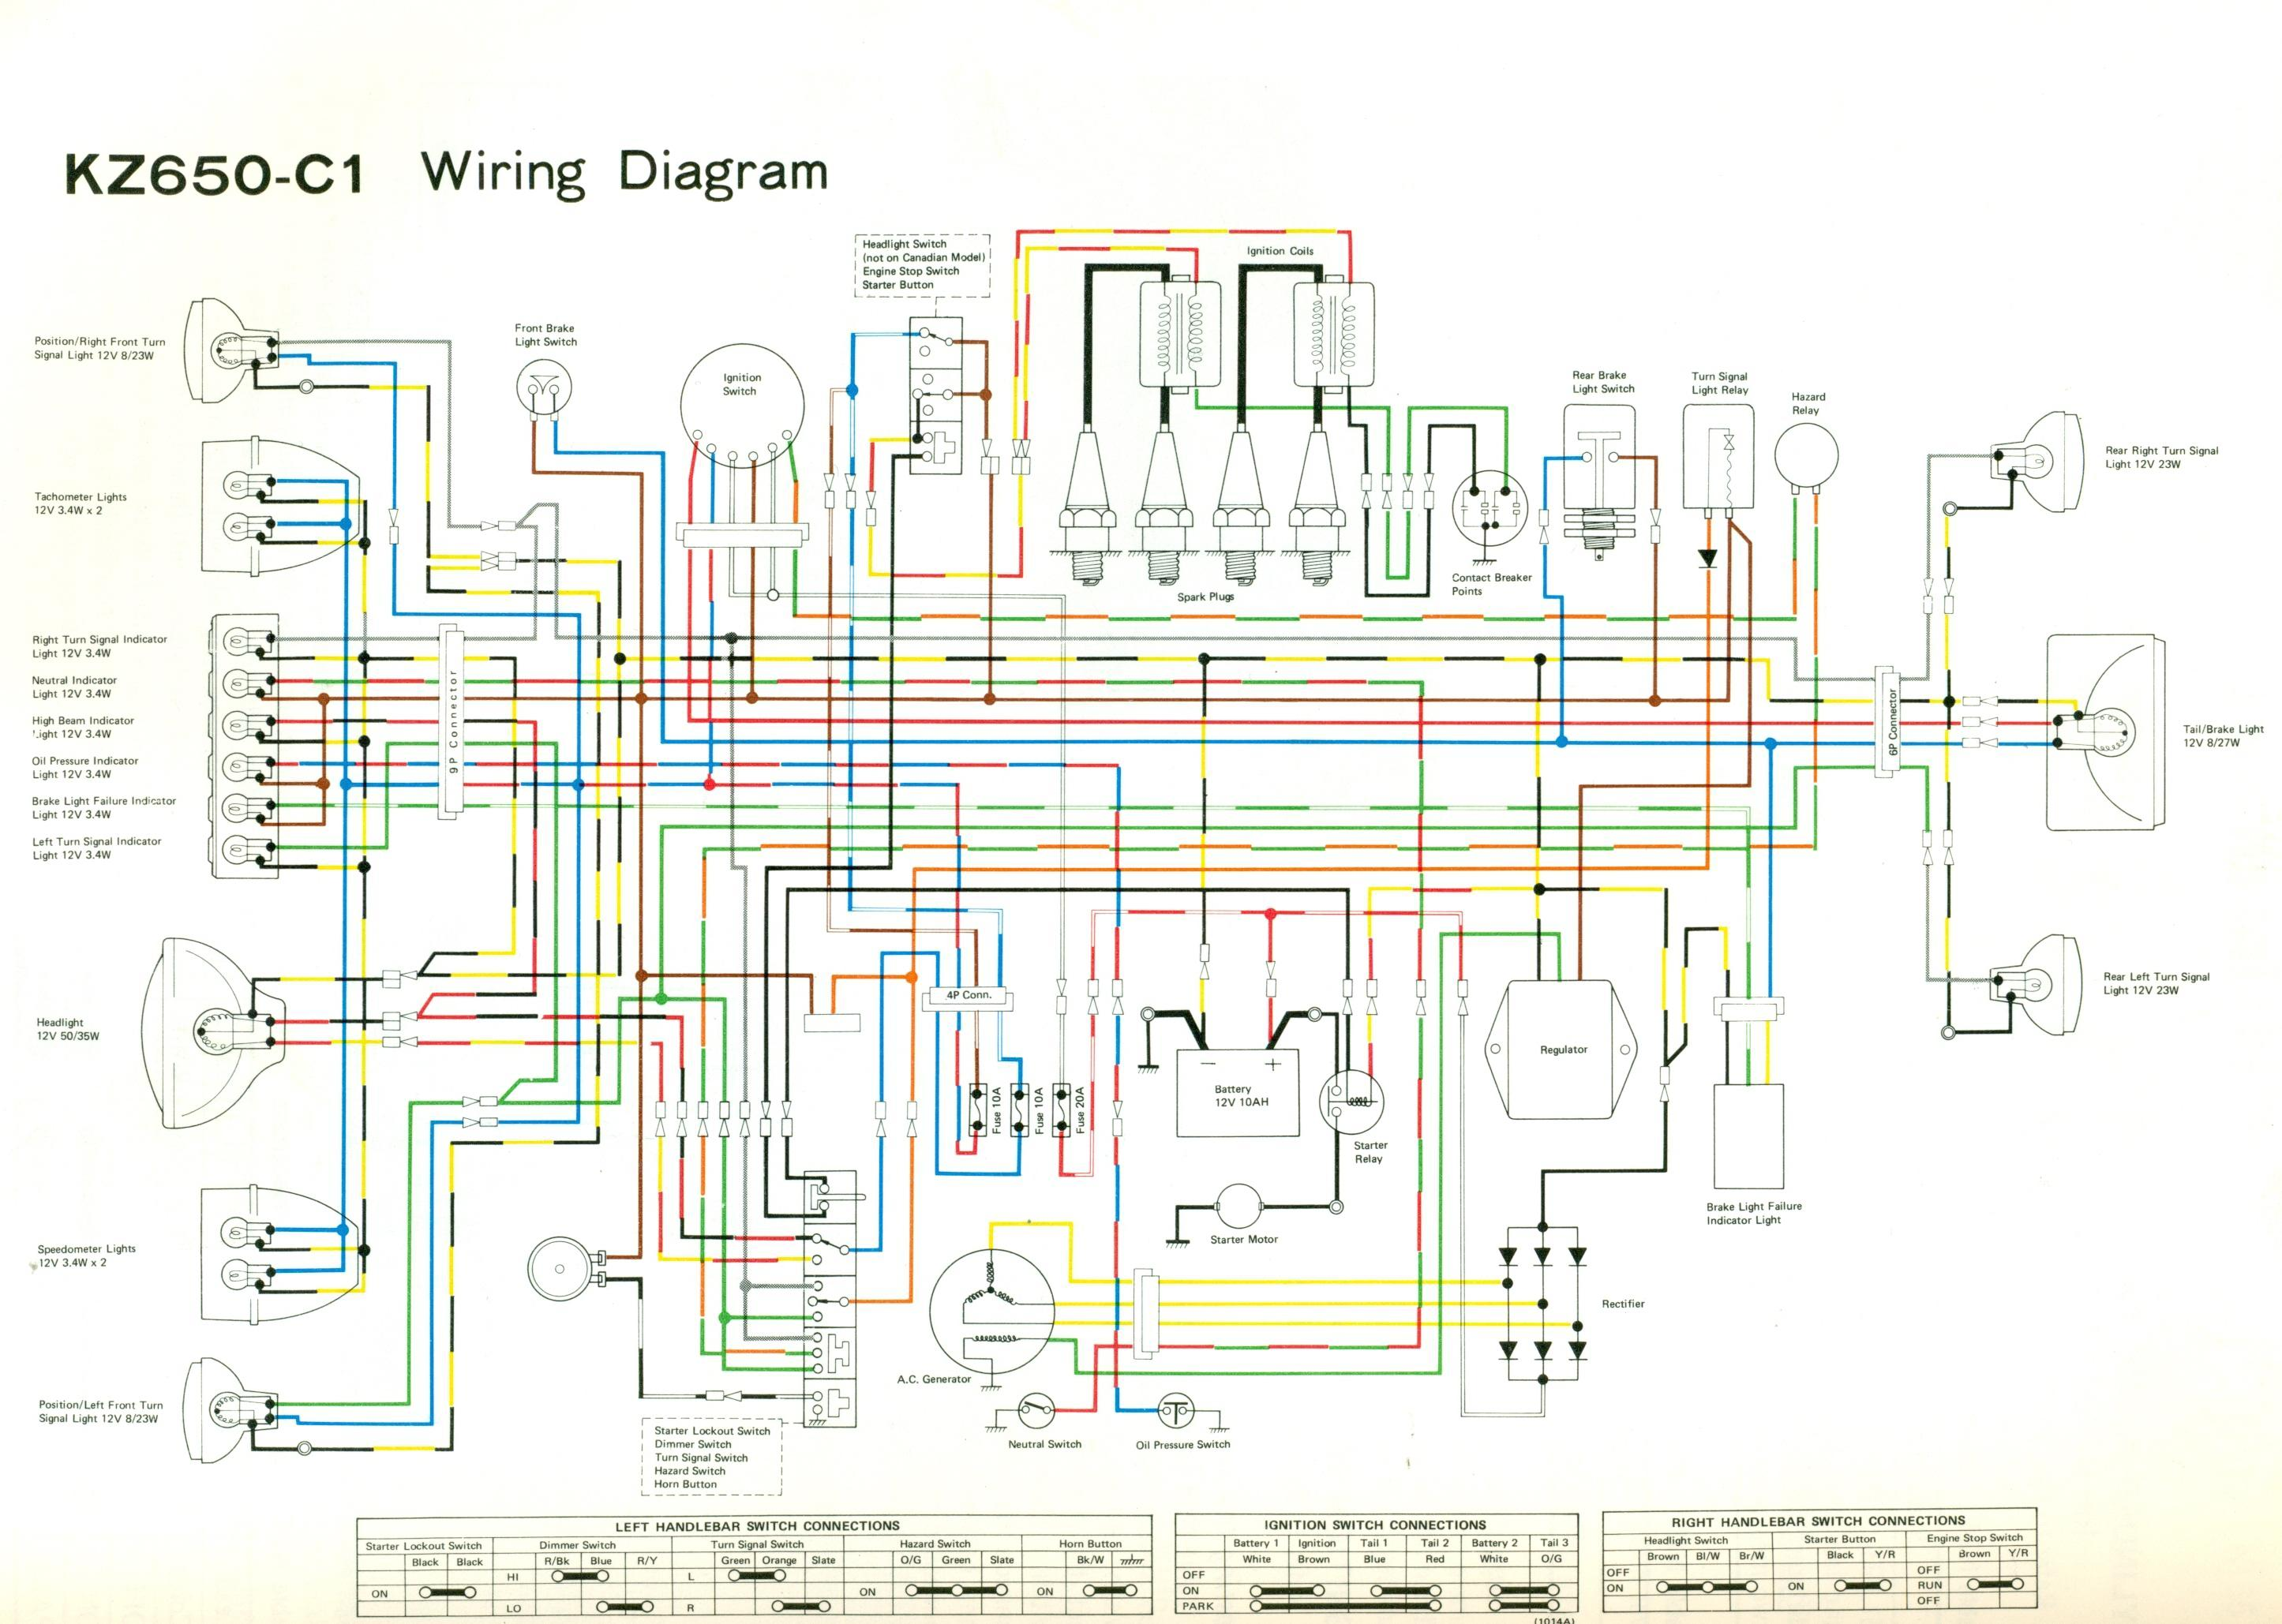 Remarkable 1983 Kawasaki Wiring Diagrams Wiring Diagram Data Wiring Cloud Pendufoxcilixyz